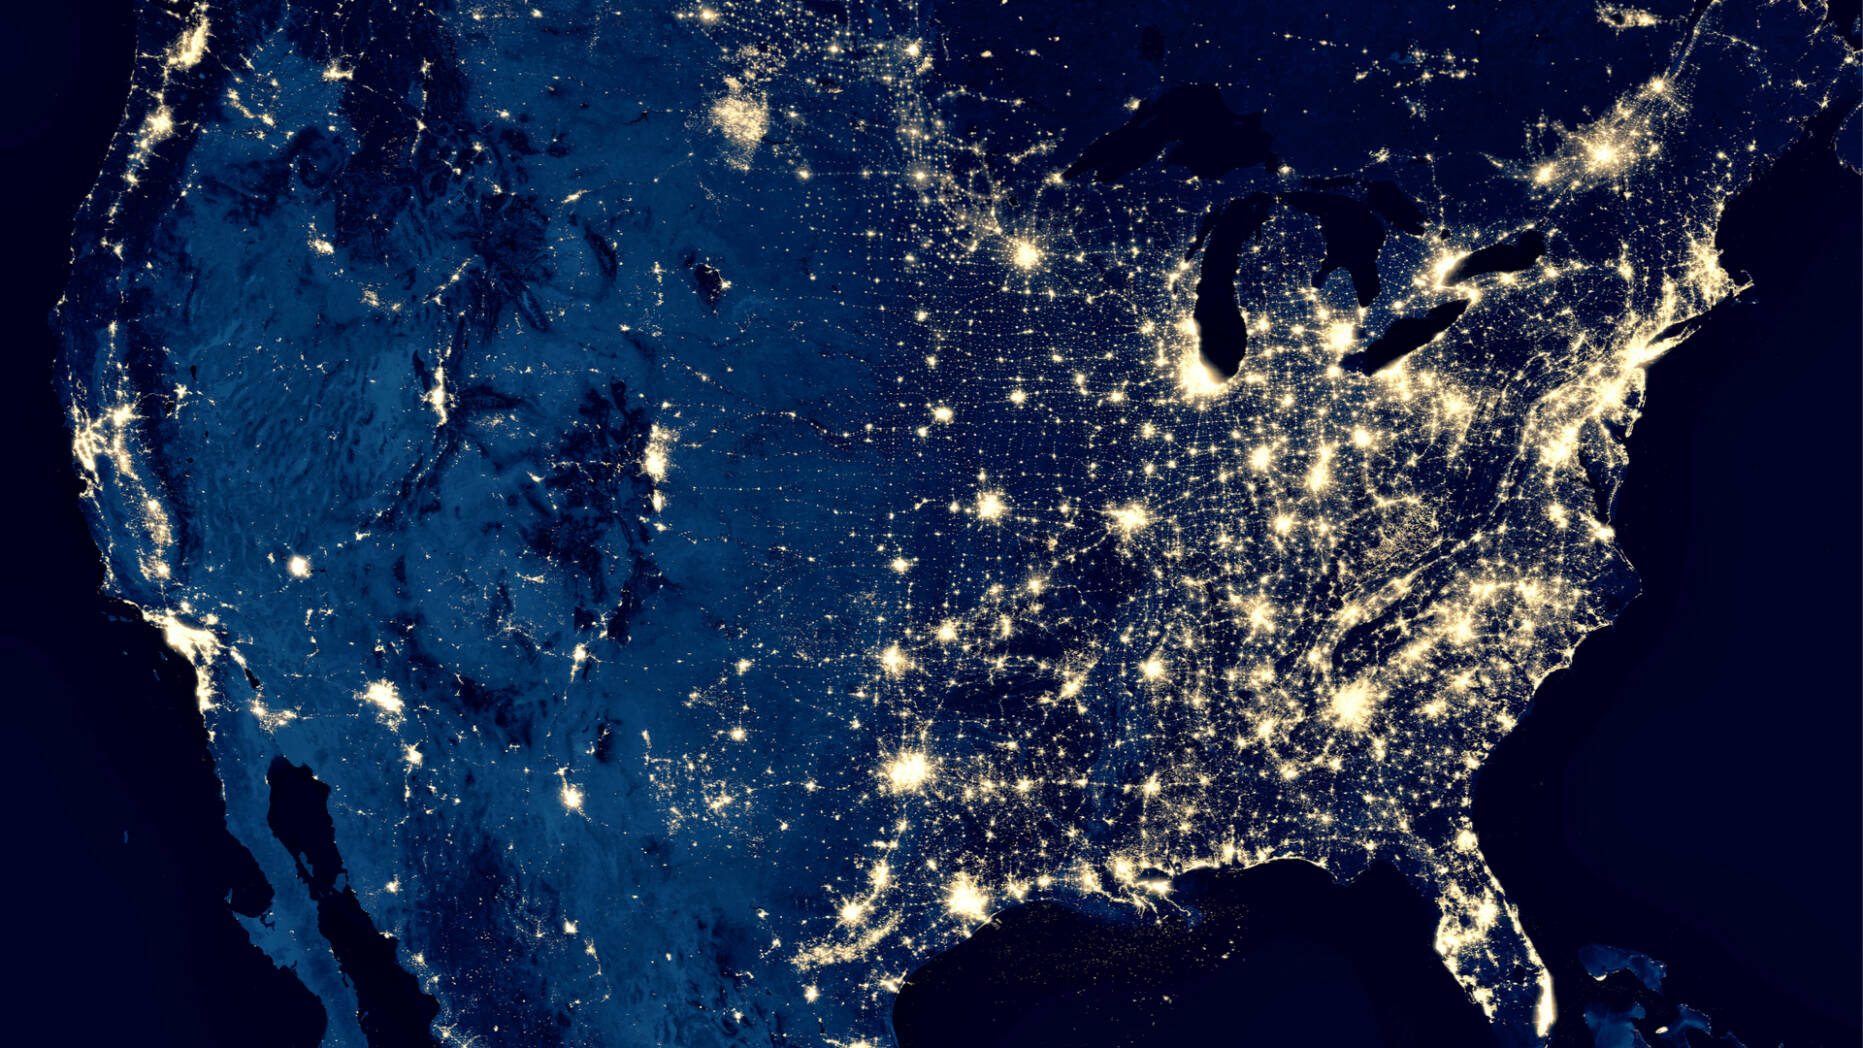 A map of deregulated energy use in the United States